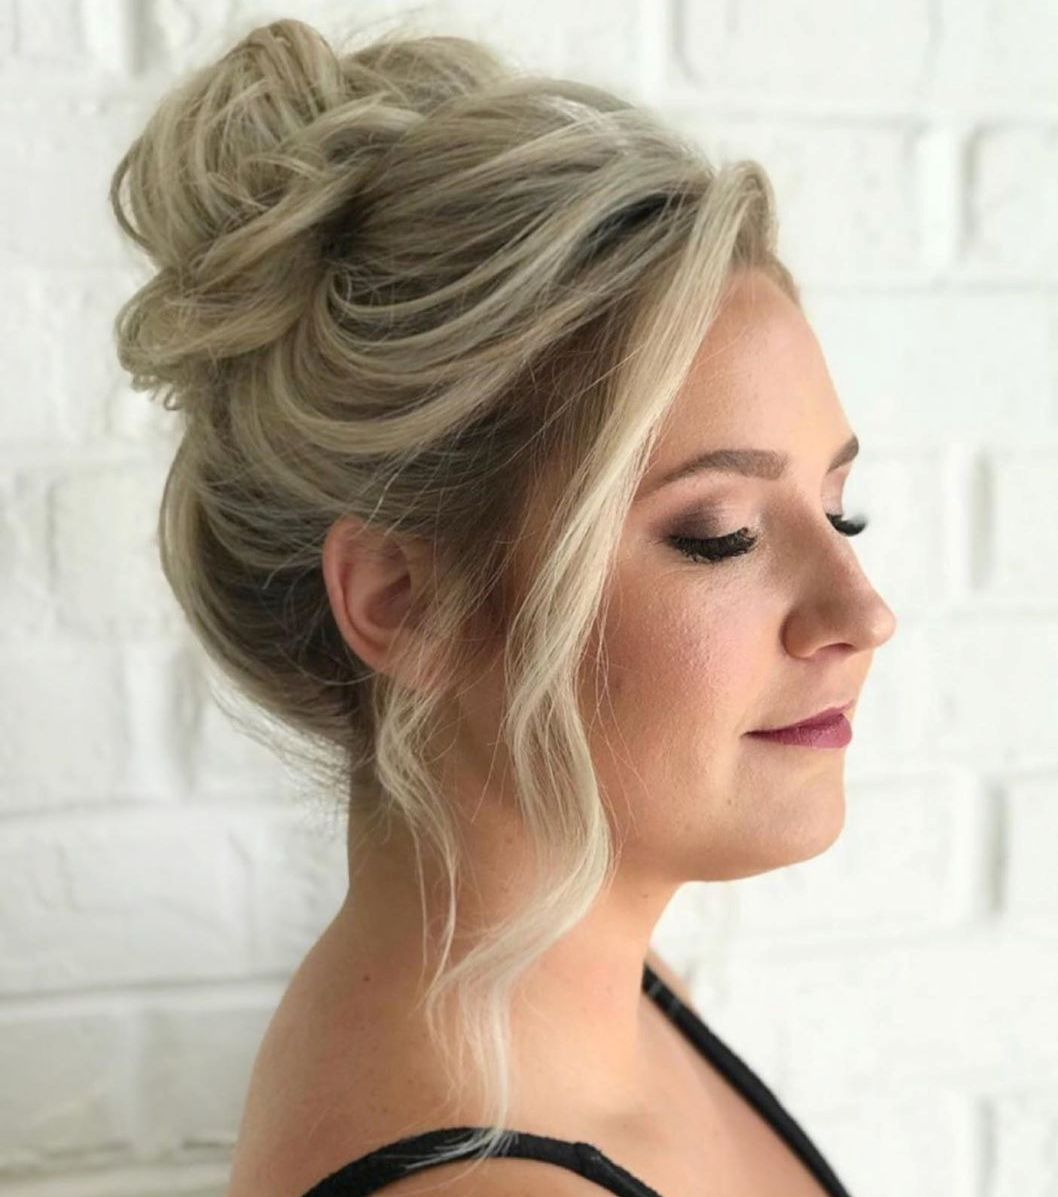 Simple Messy Bun for a Round Face